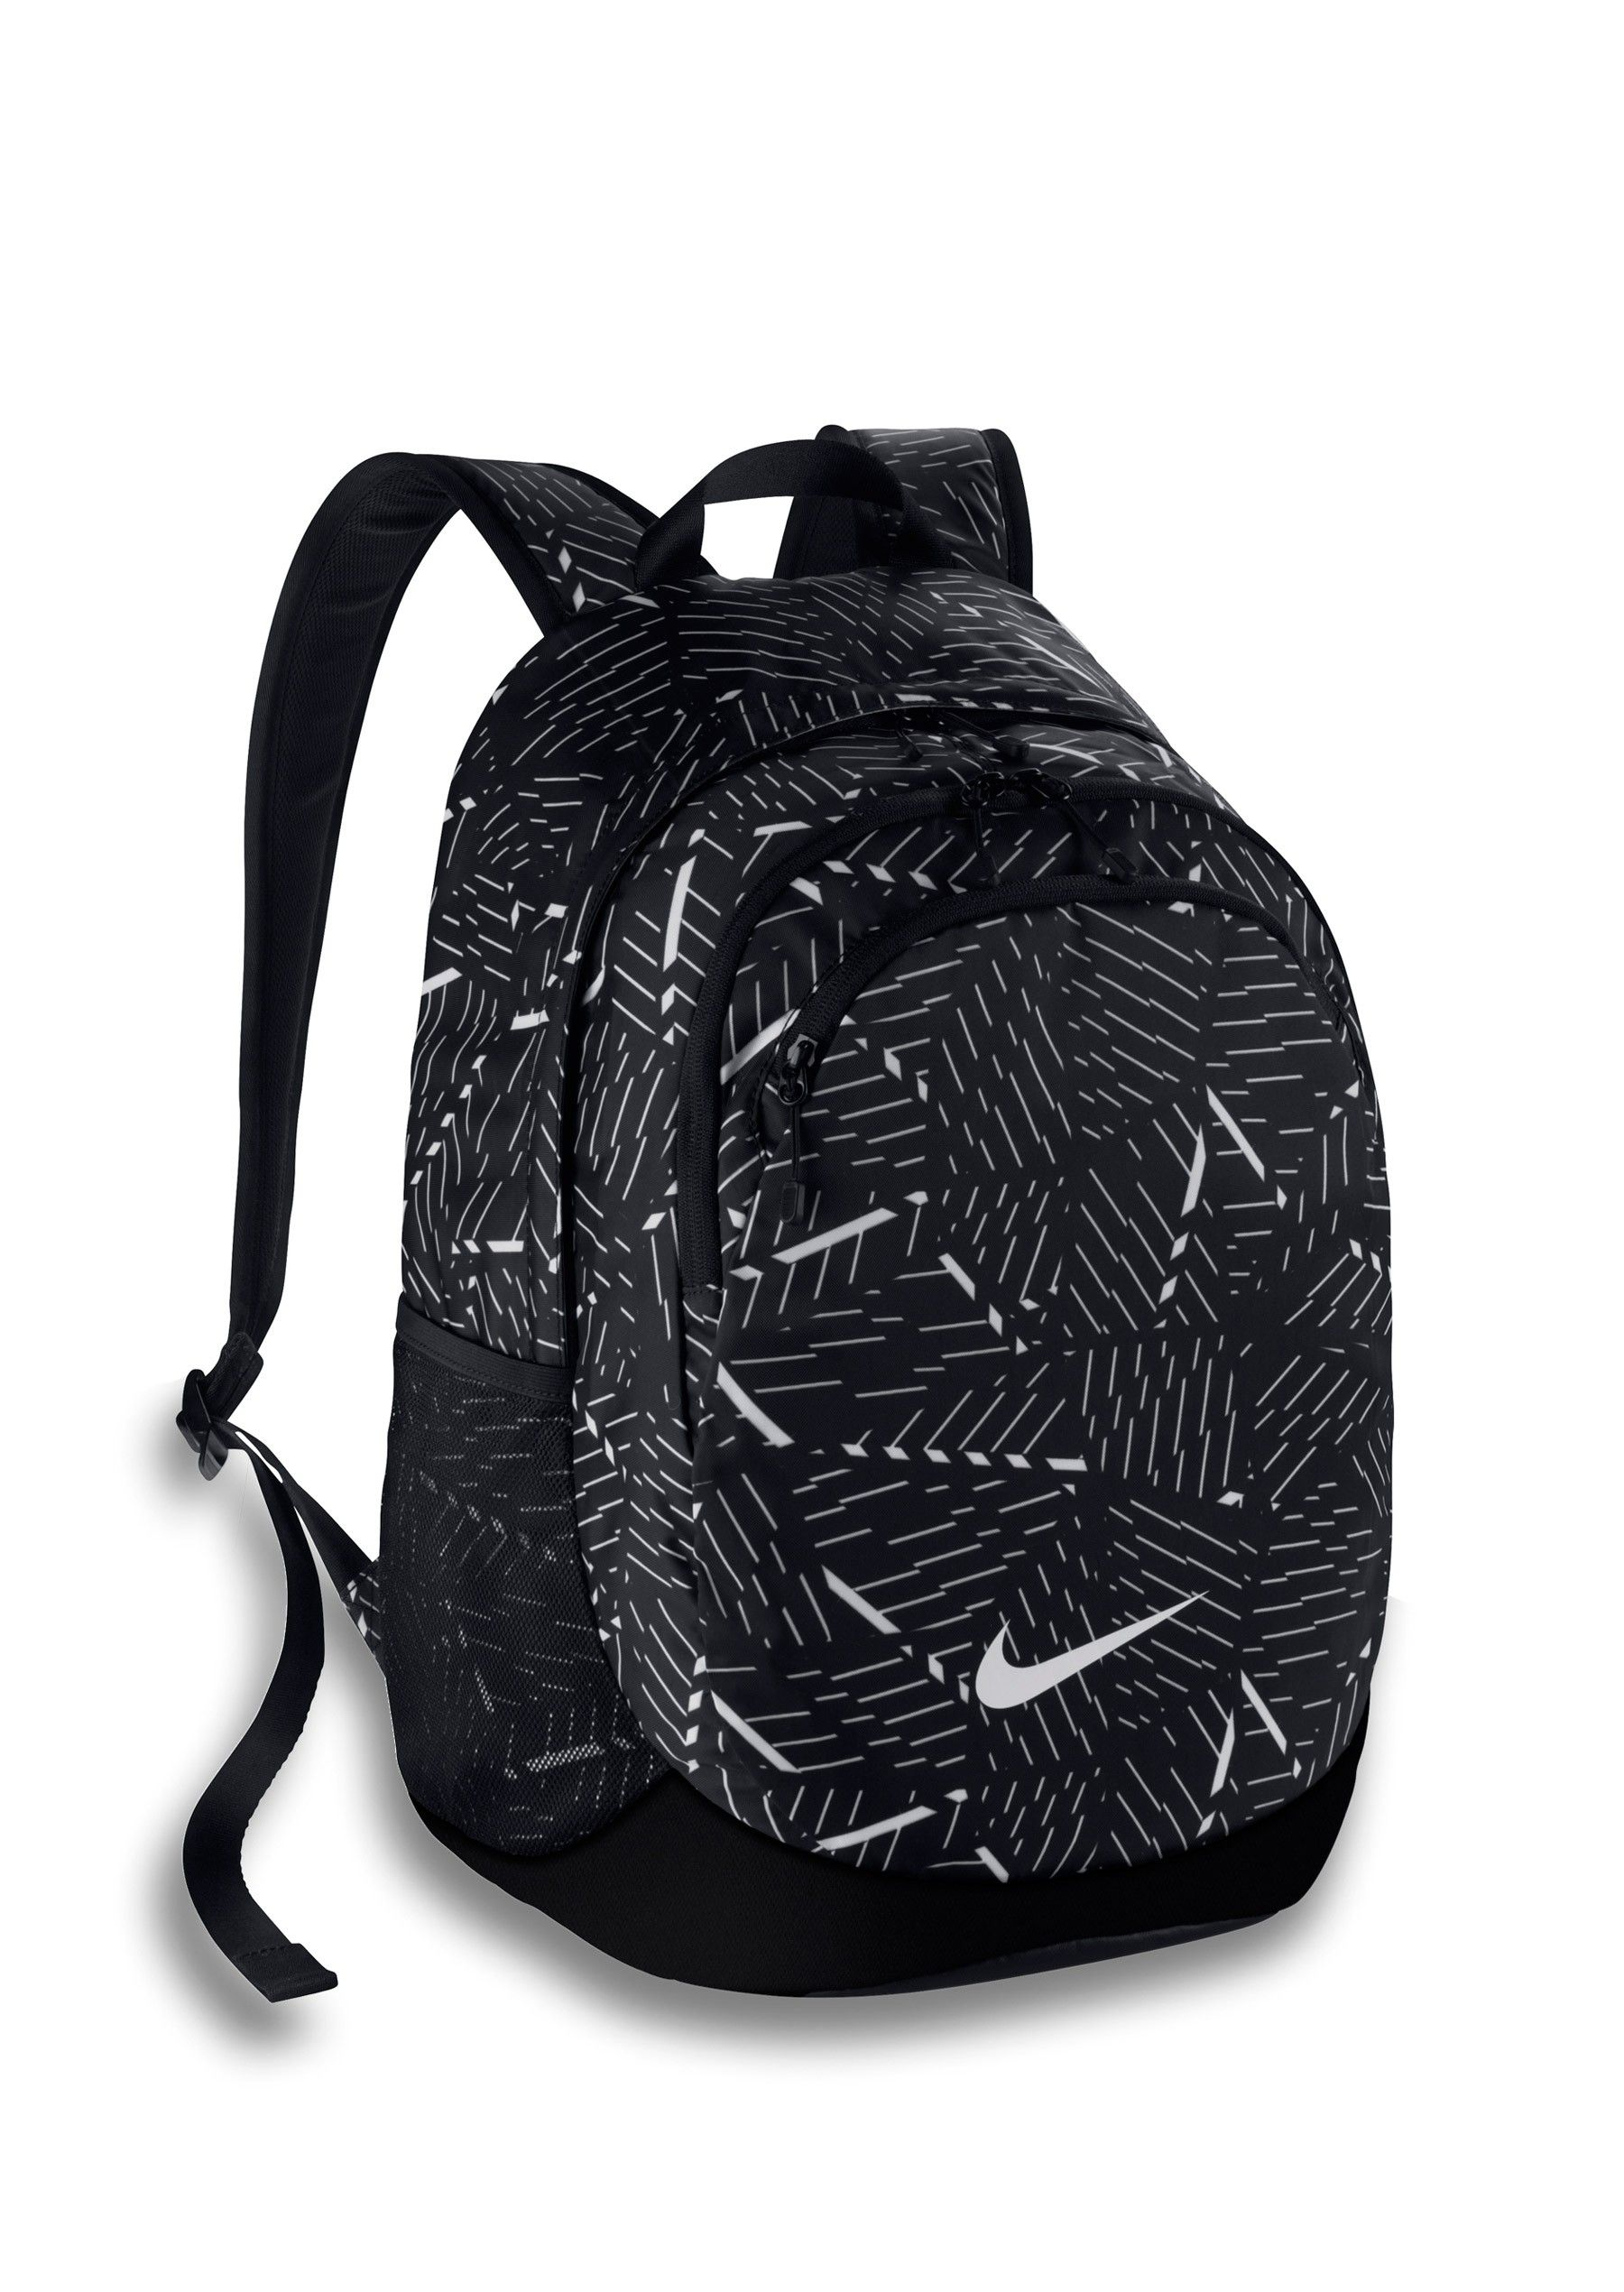 9da6c9ad28 NIKE LEGEND BACKPACK